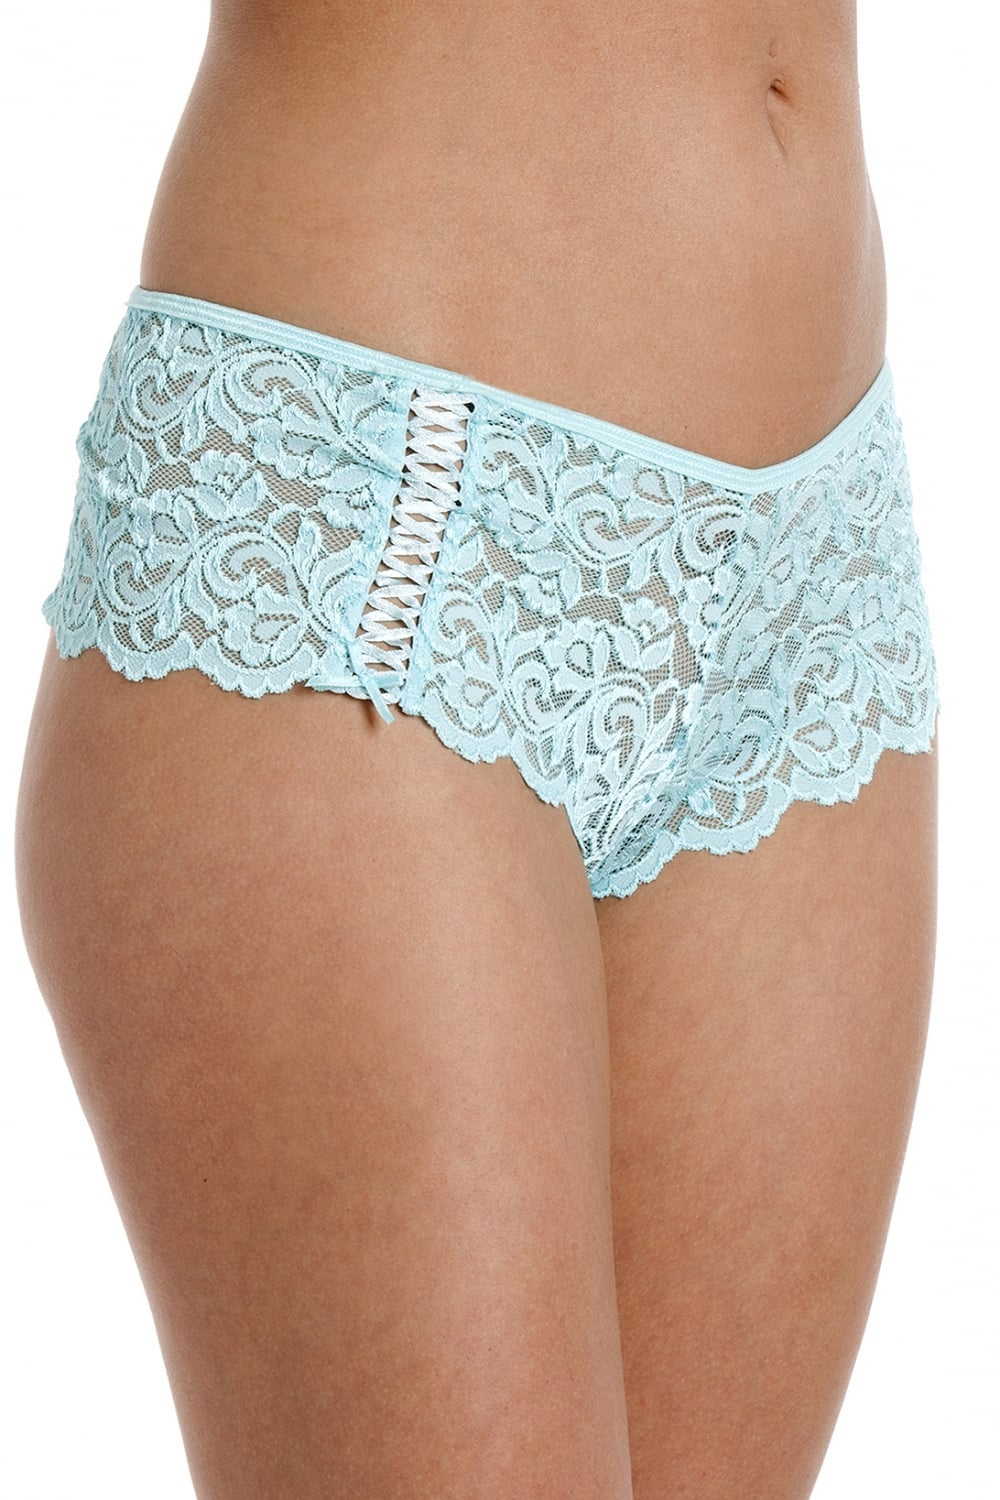 Just ask Jordan, the FOXERS Charcoal Grey Lace Boxers and matching Cropped Lace Camisole make a great sleep set!. FOXERS are the Original Lace Boxer. Our lace boxer shorts are so soft, it will change your mind about what lace feels like.